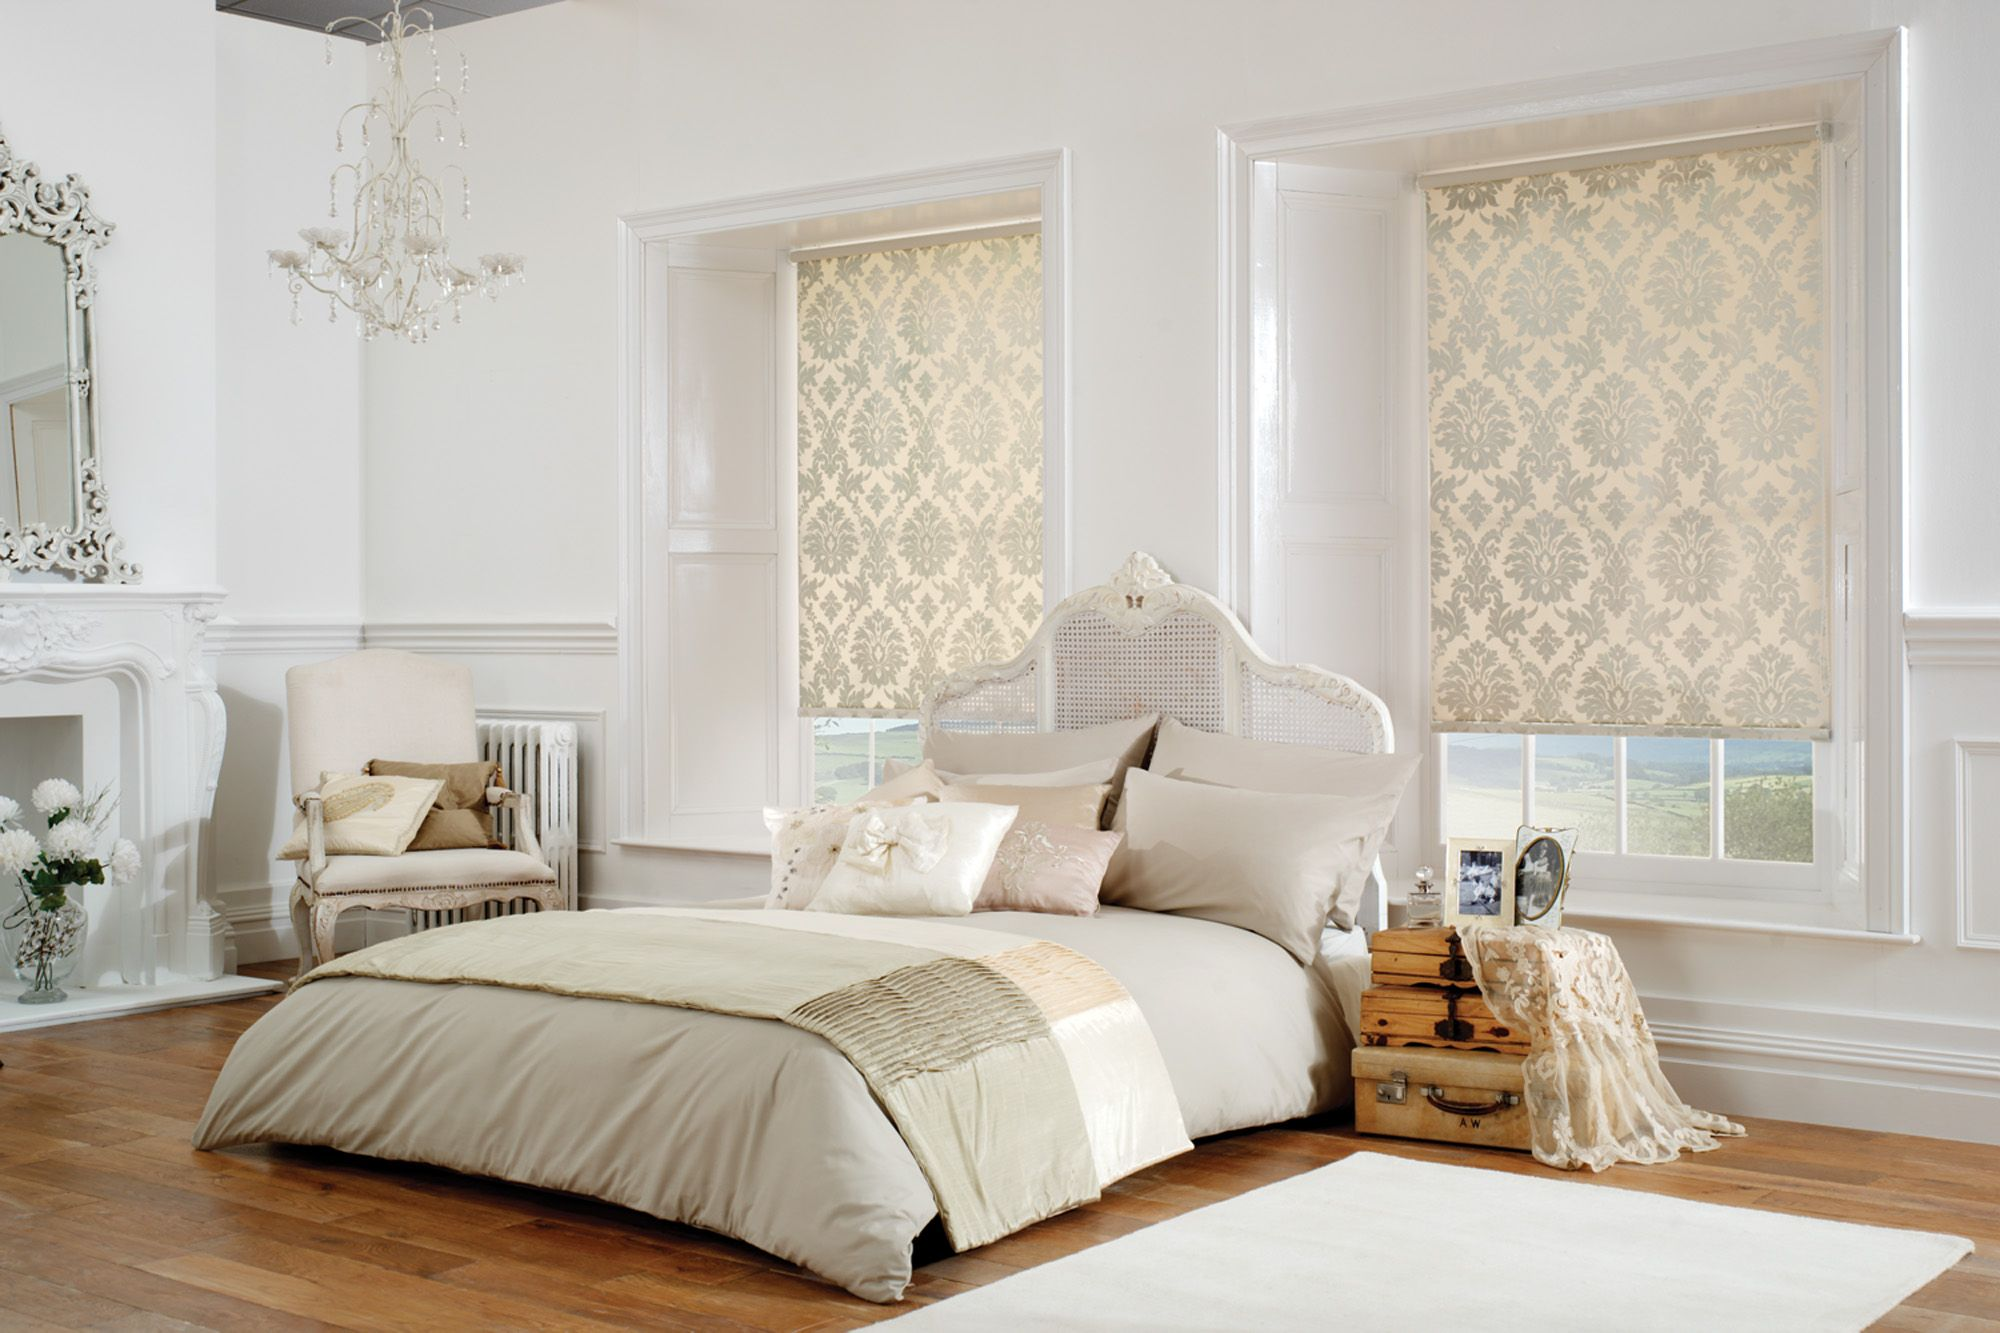 shimmering cream gold damask roller blinds in a white and cream bedroom with a shabby chic bed. Black Bedroom Furniture Sets. Home Design Ideas